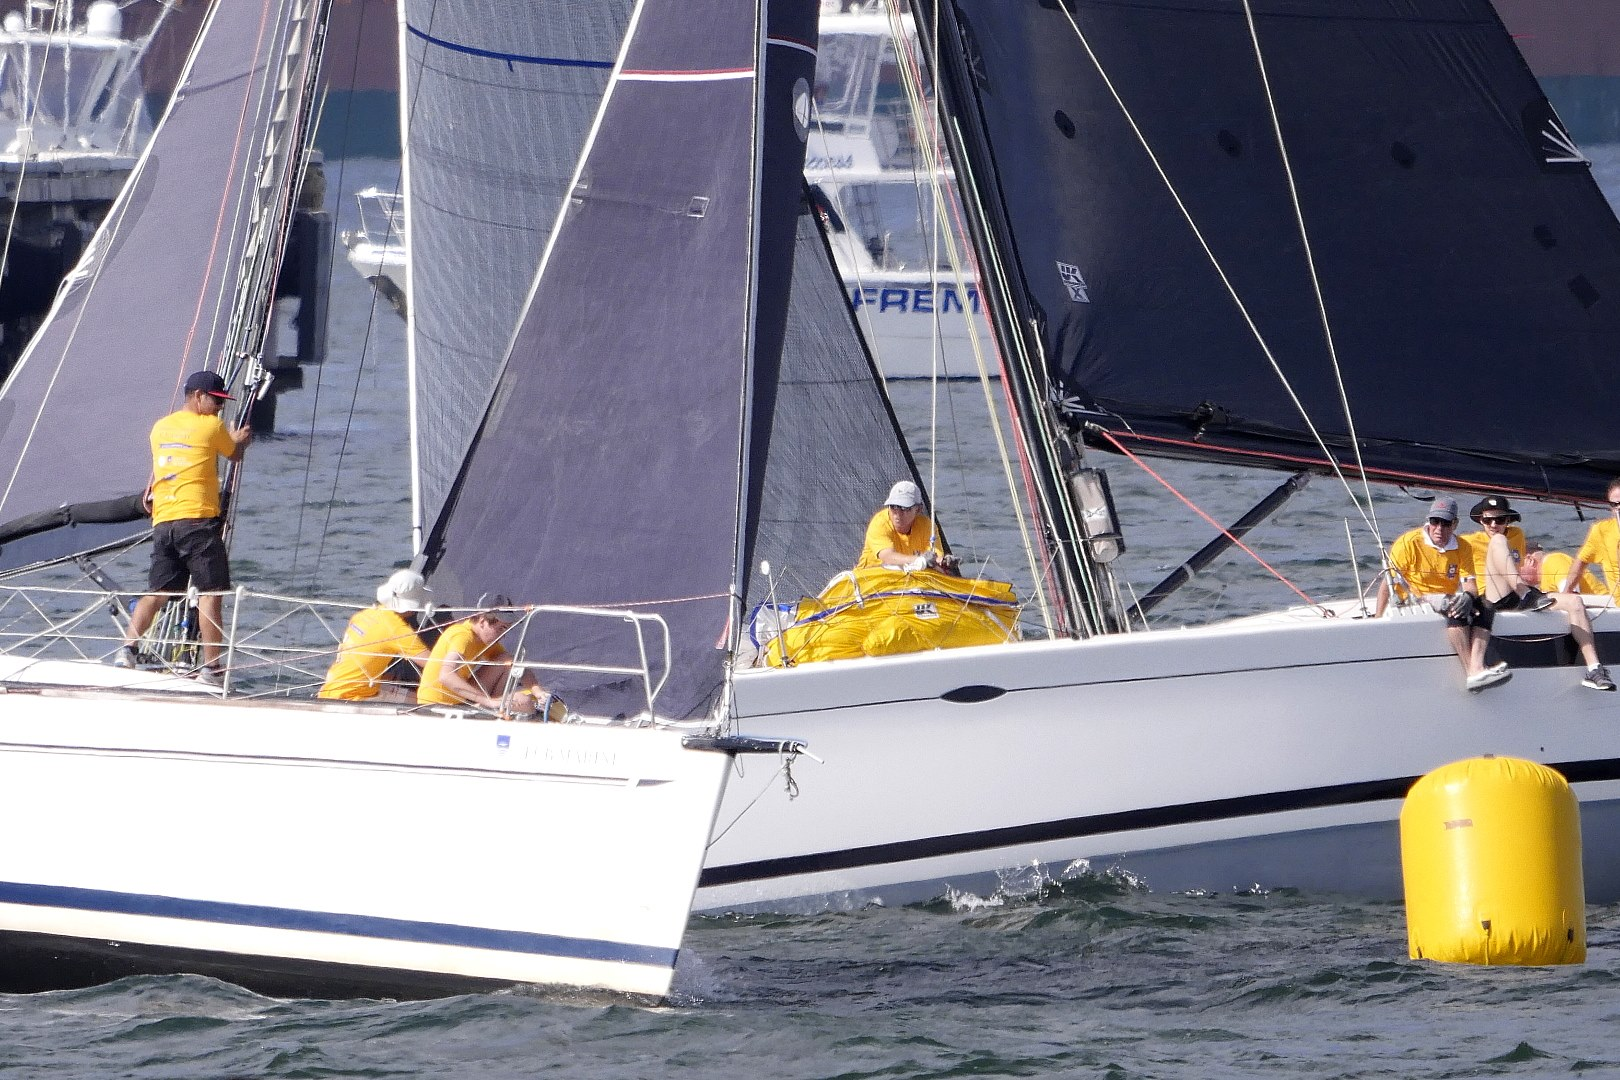 BETTER SAFE THAN SORRY WHEN RACING SAILBOATS